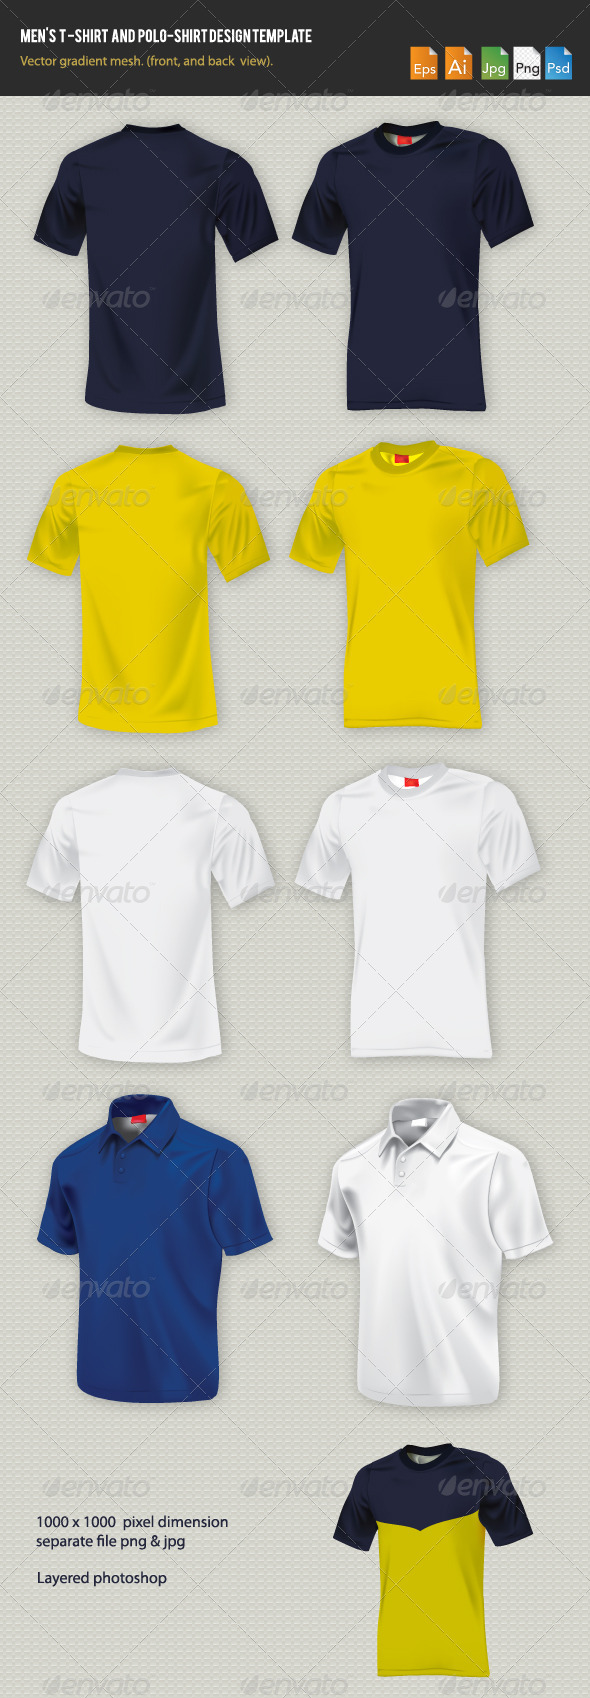 Men's t-shirt design template  - Man-made Objects Objects